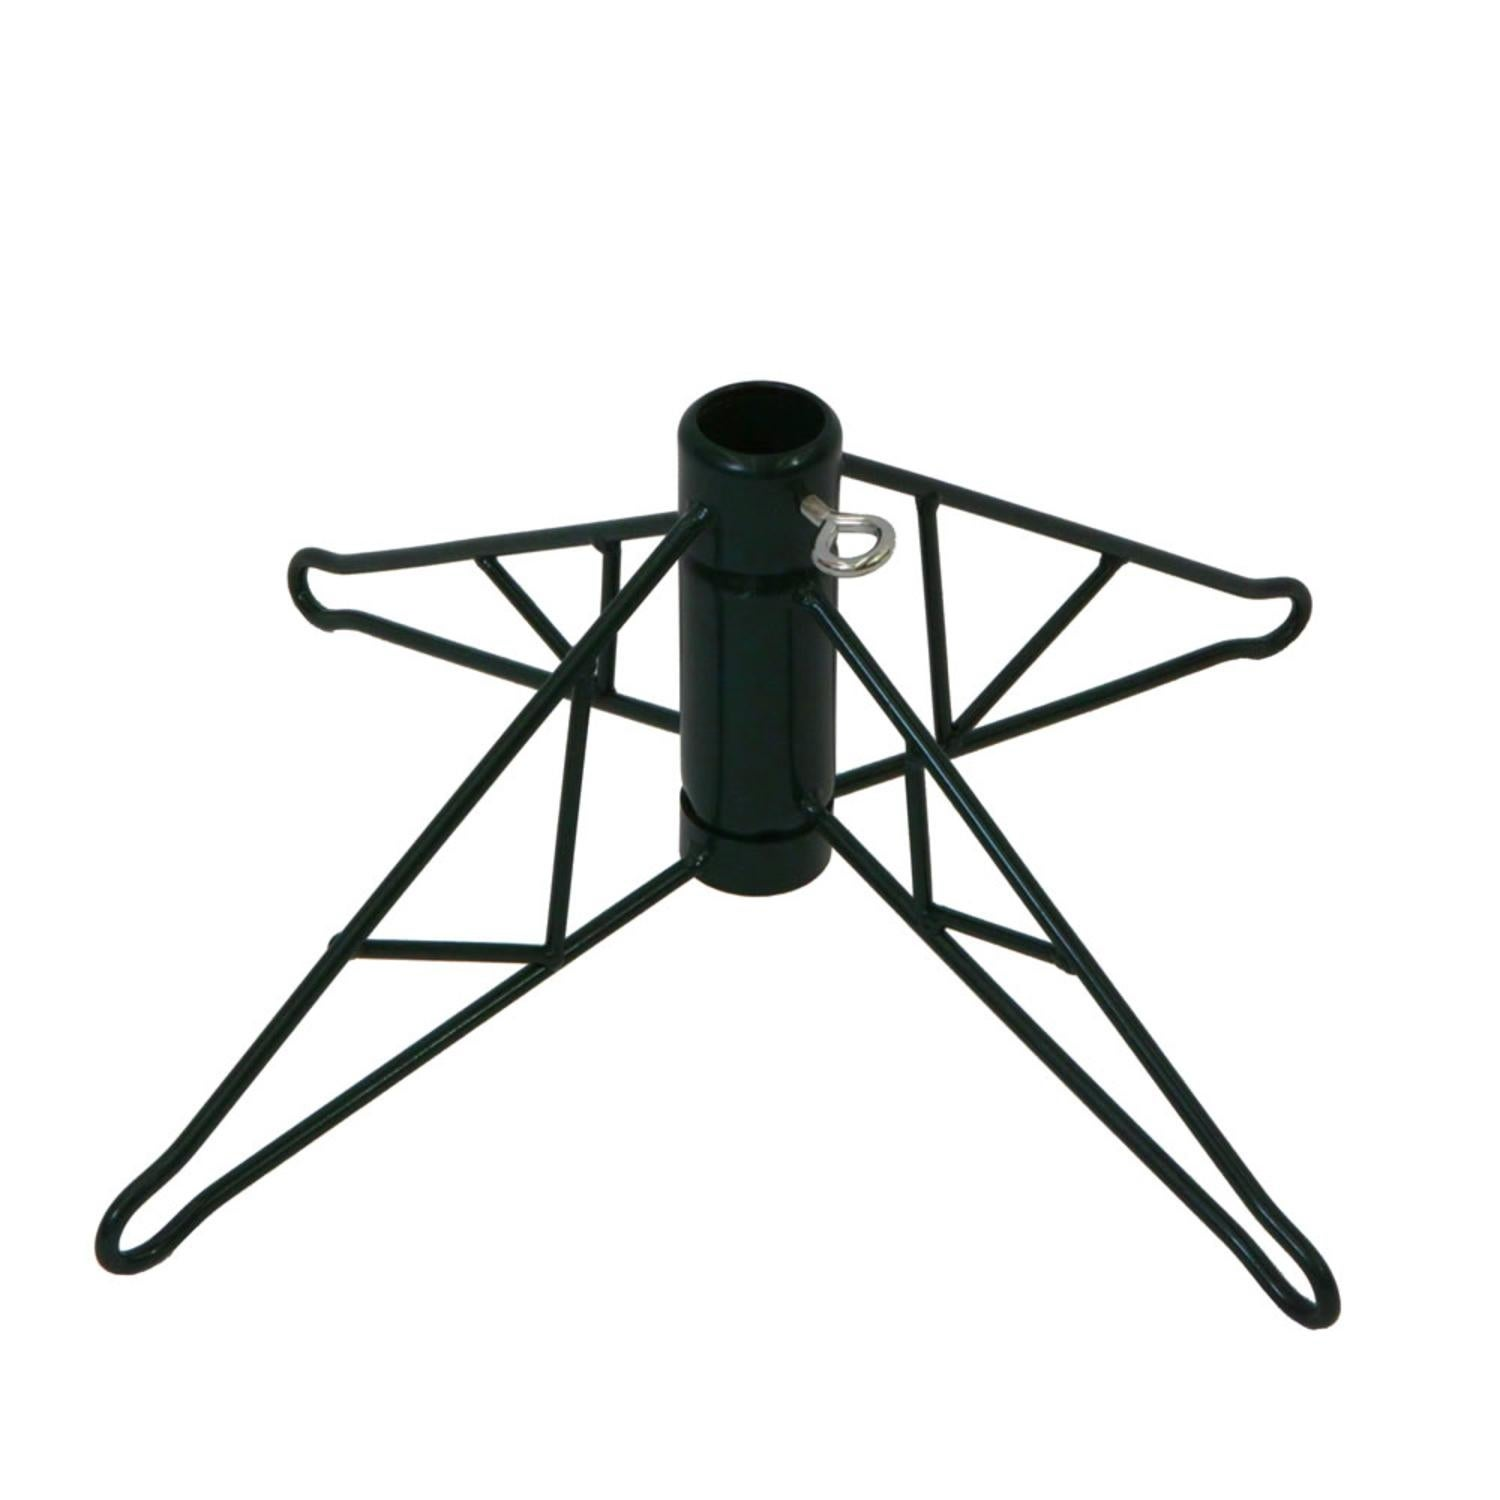 48 Green Artificial Foldable Christmas Tree Stand Overstock 20825623